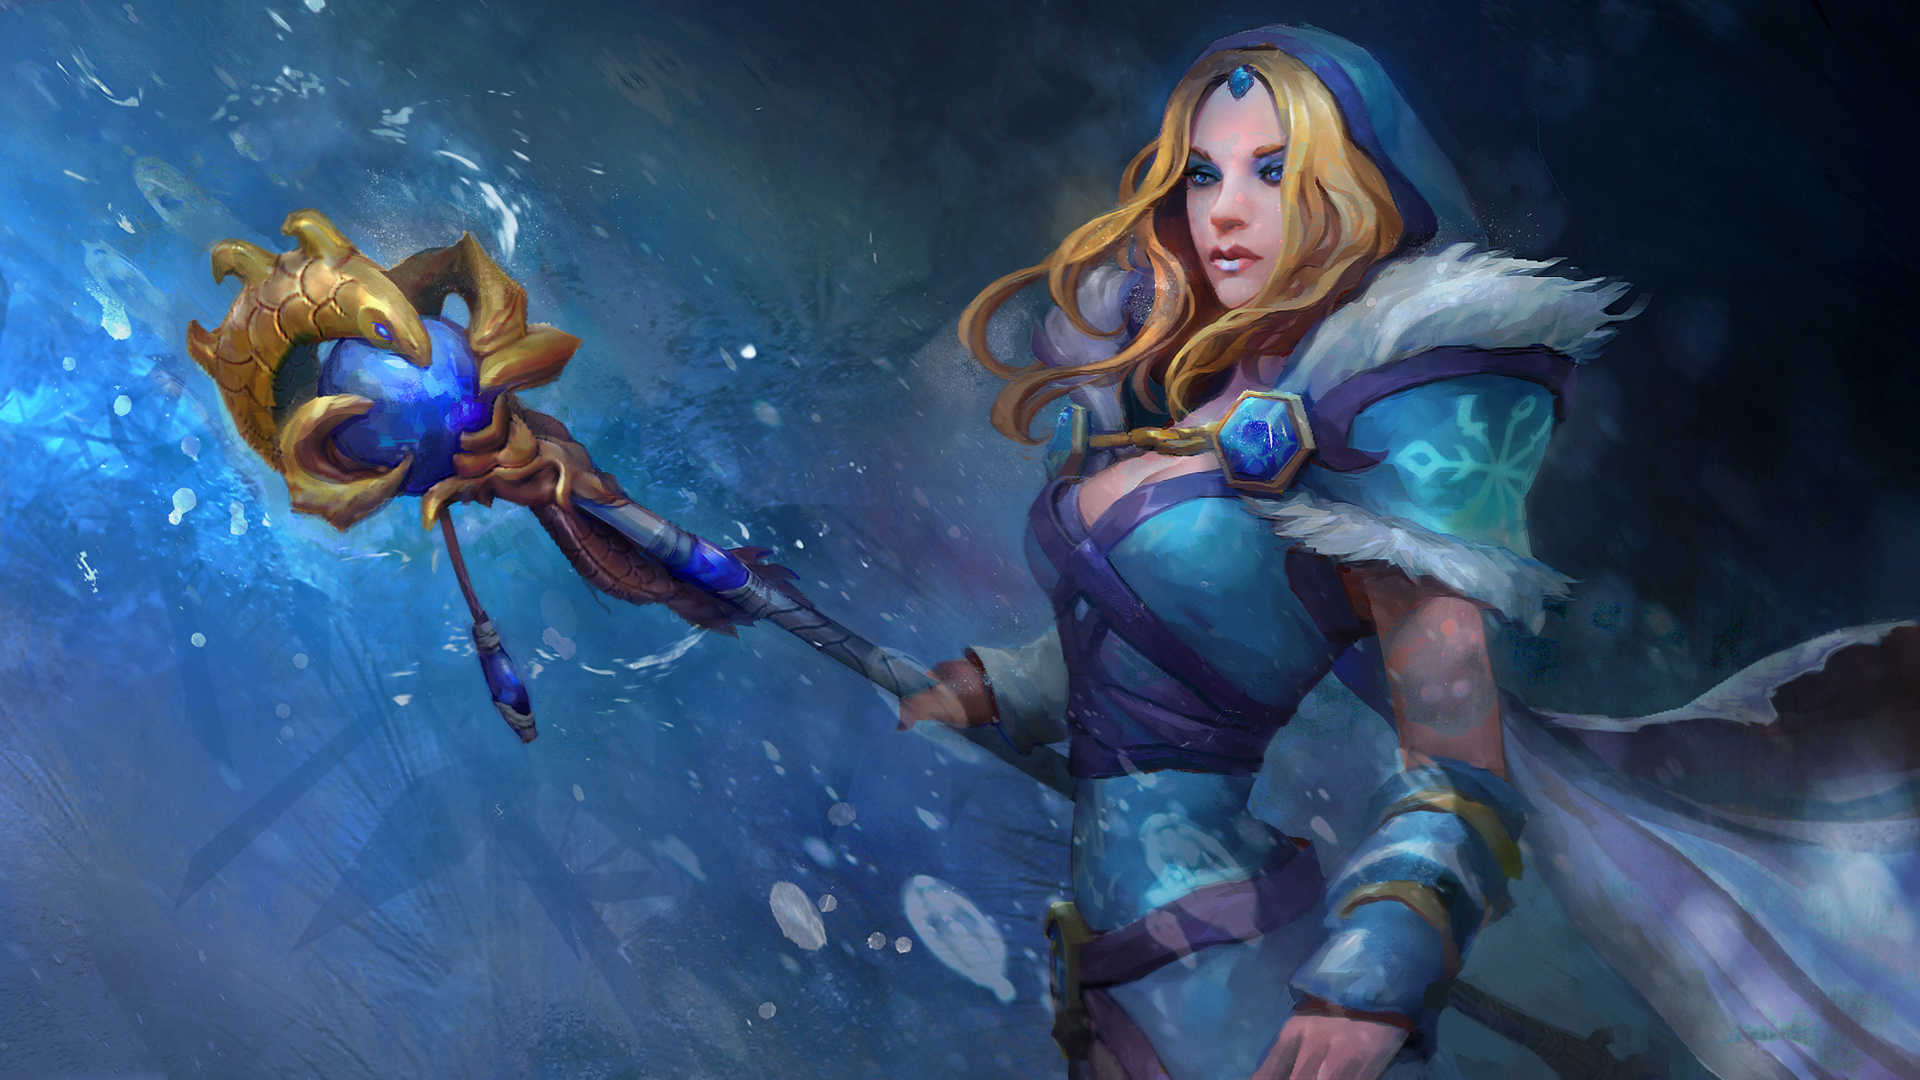 Images Dota 2 Crystal Maiden Mage Staff Girls Fantasy Vdeo